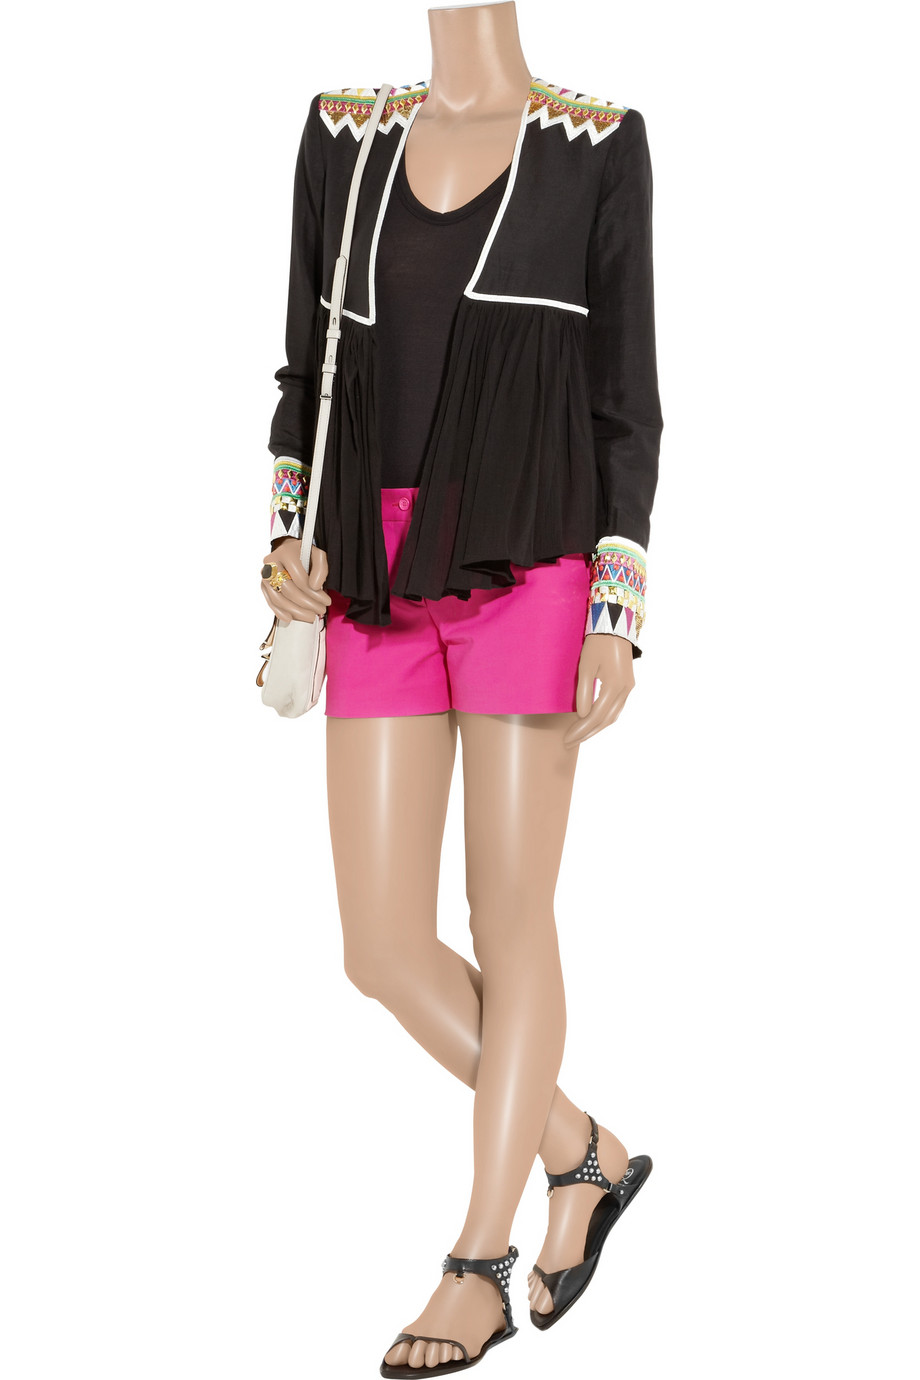 Sass and Bide Rose Embroided Cape Jacket - Roblox